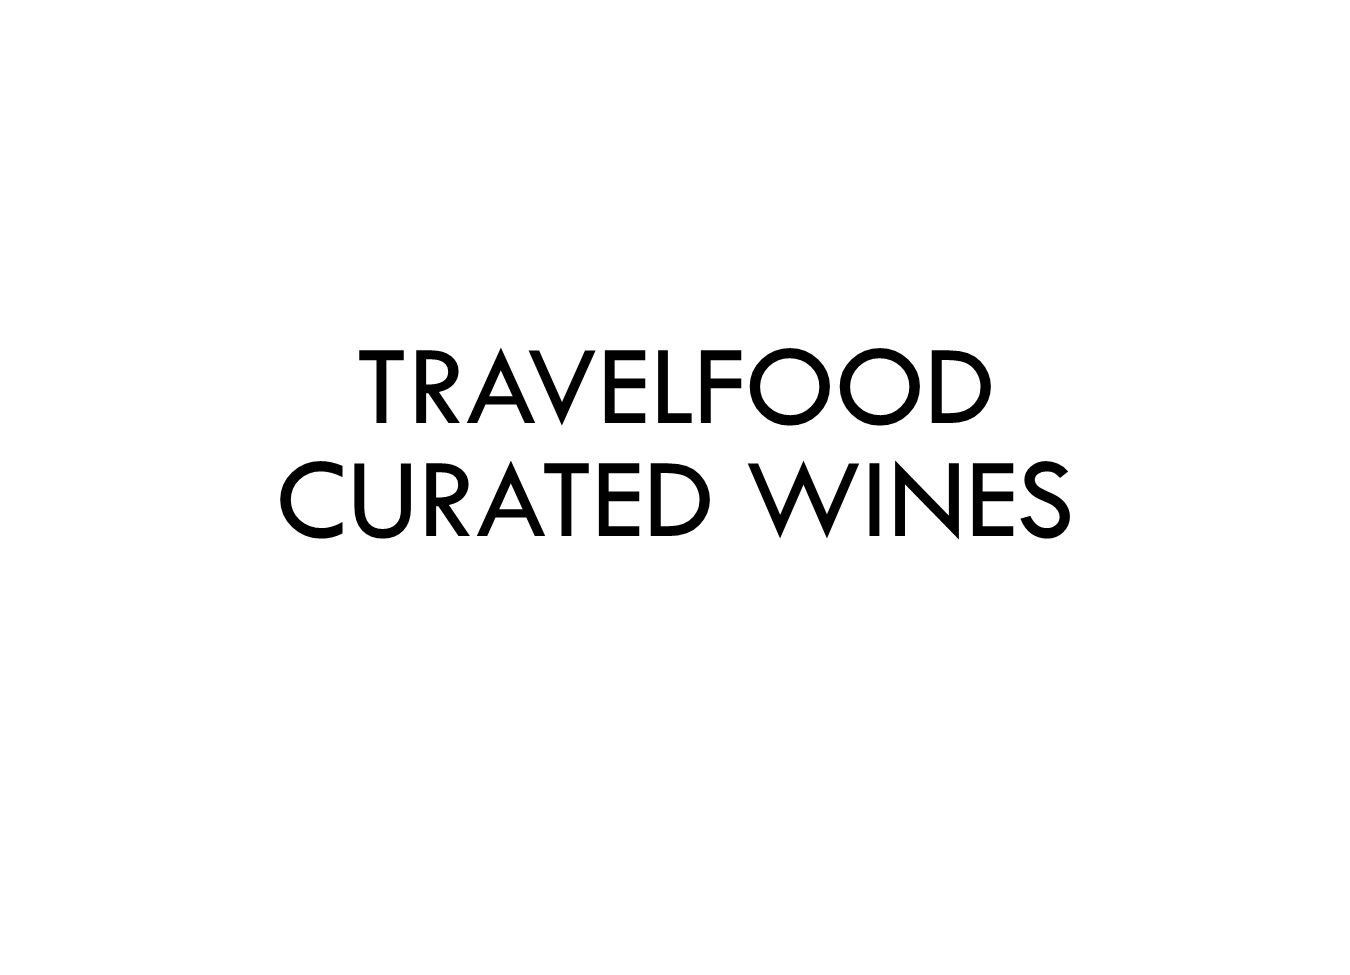 Travelfood Curated Wines Logo